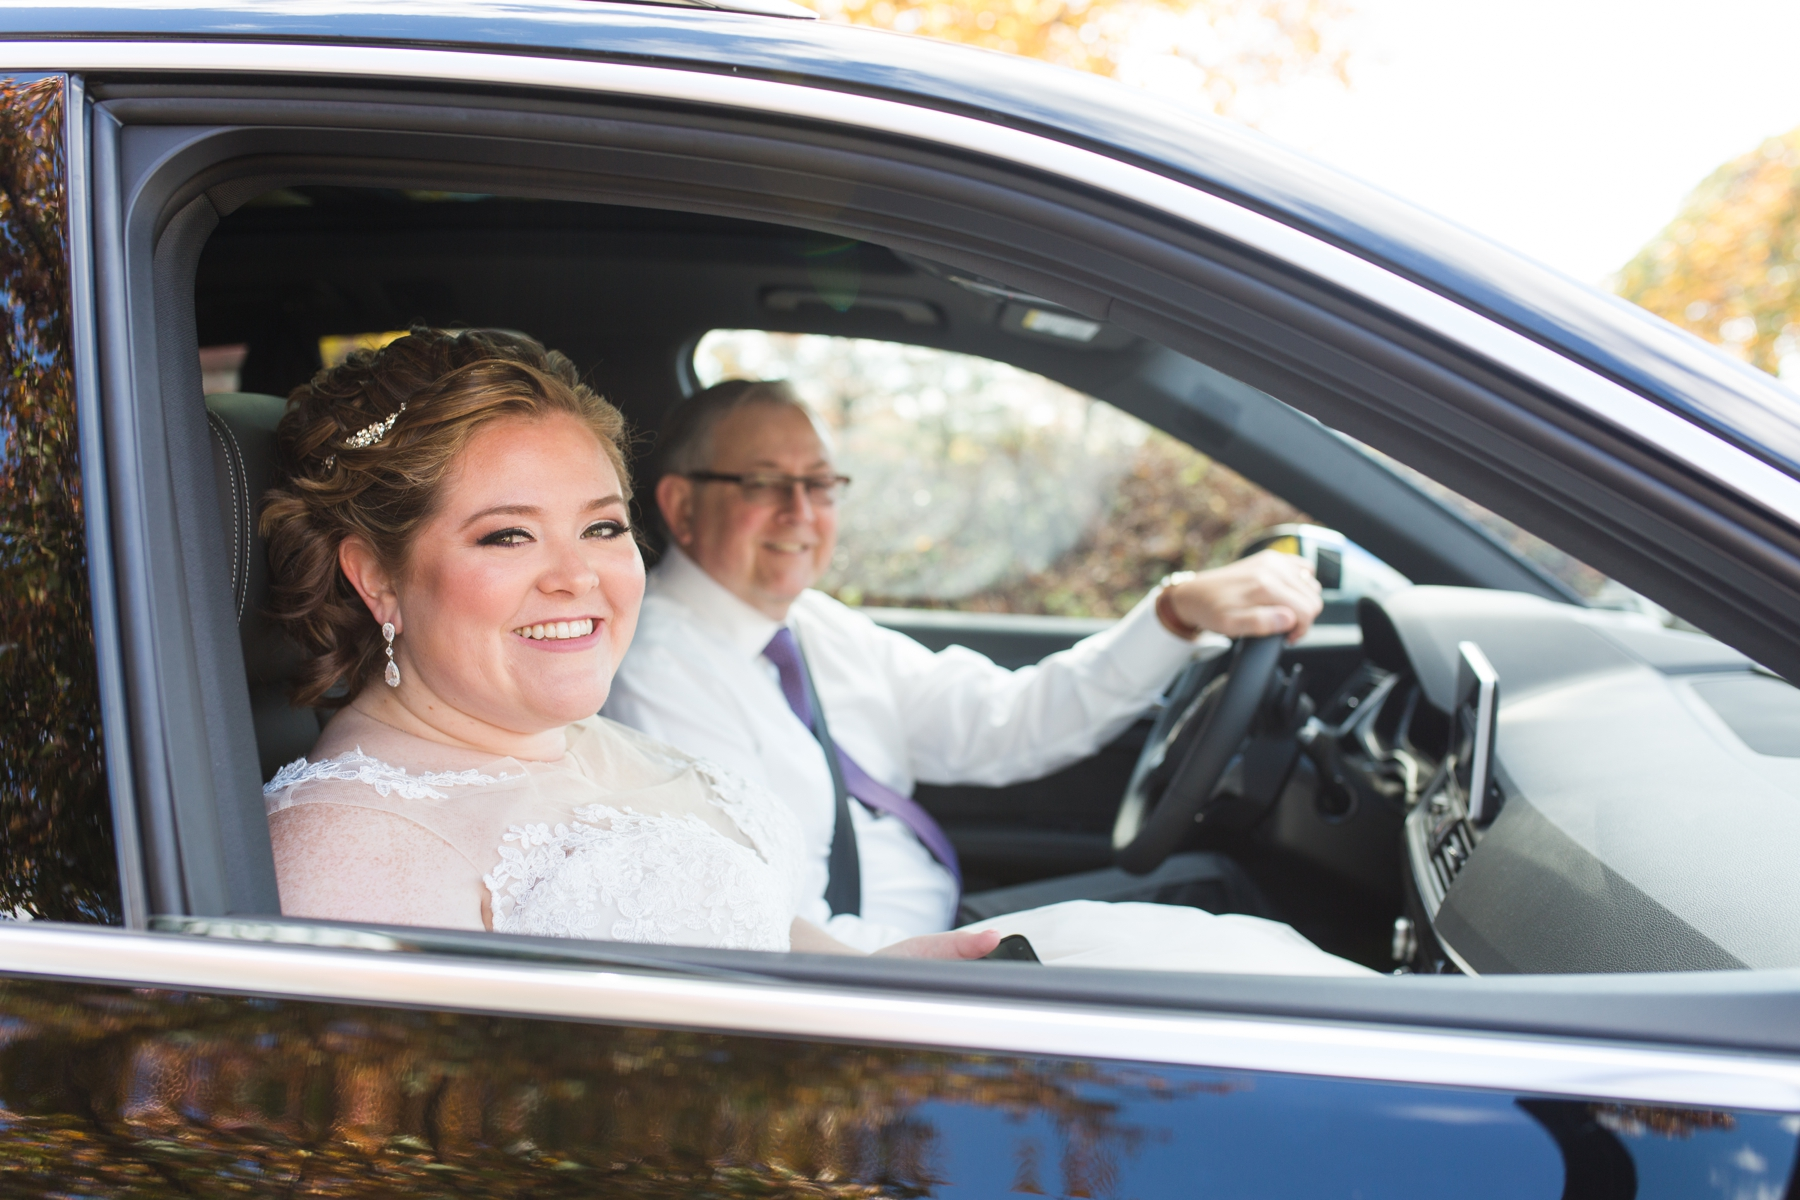 Kate's got clicked with her dad inside the car